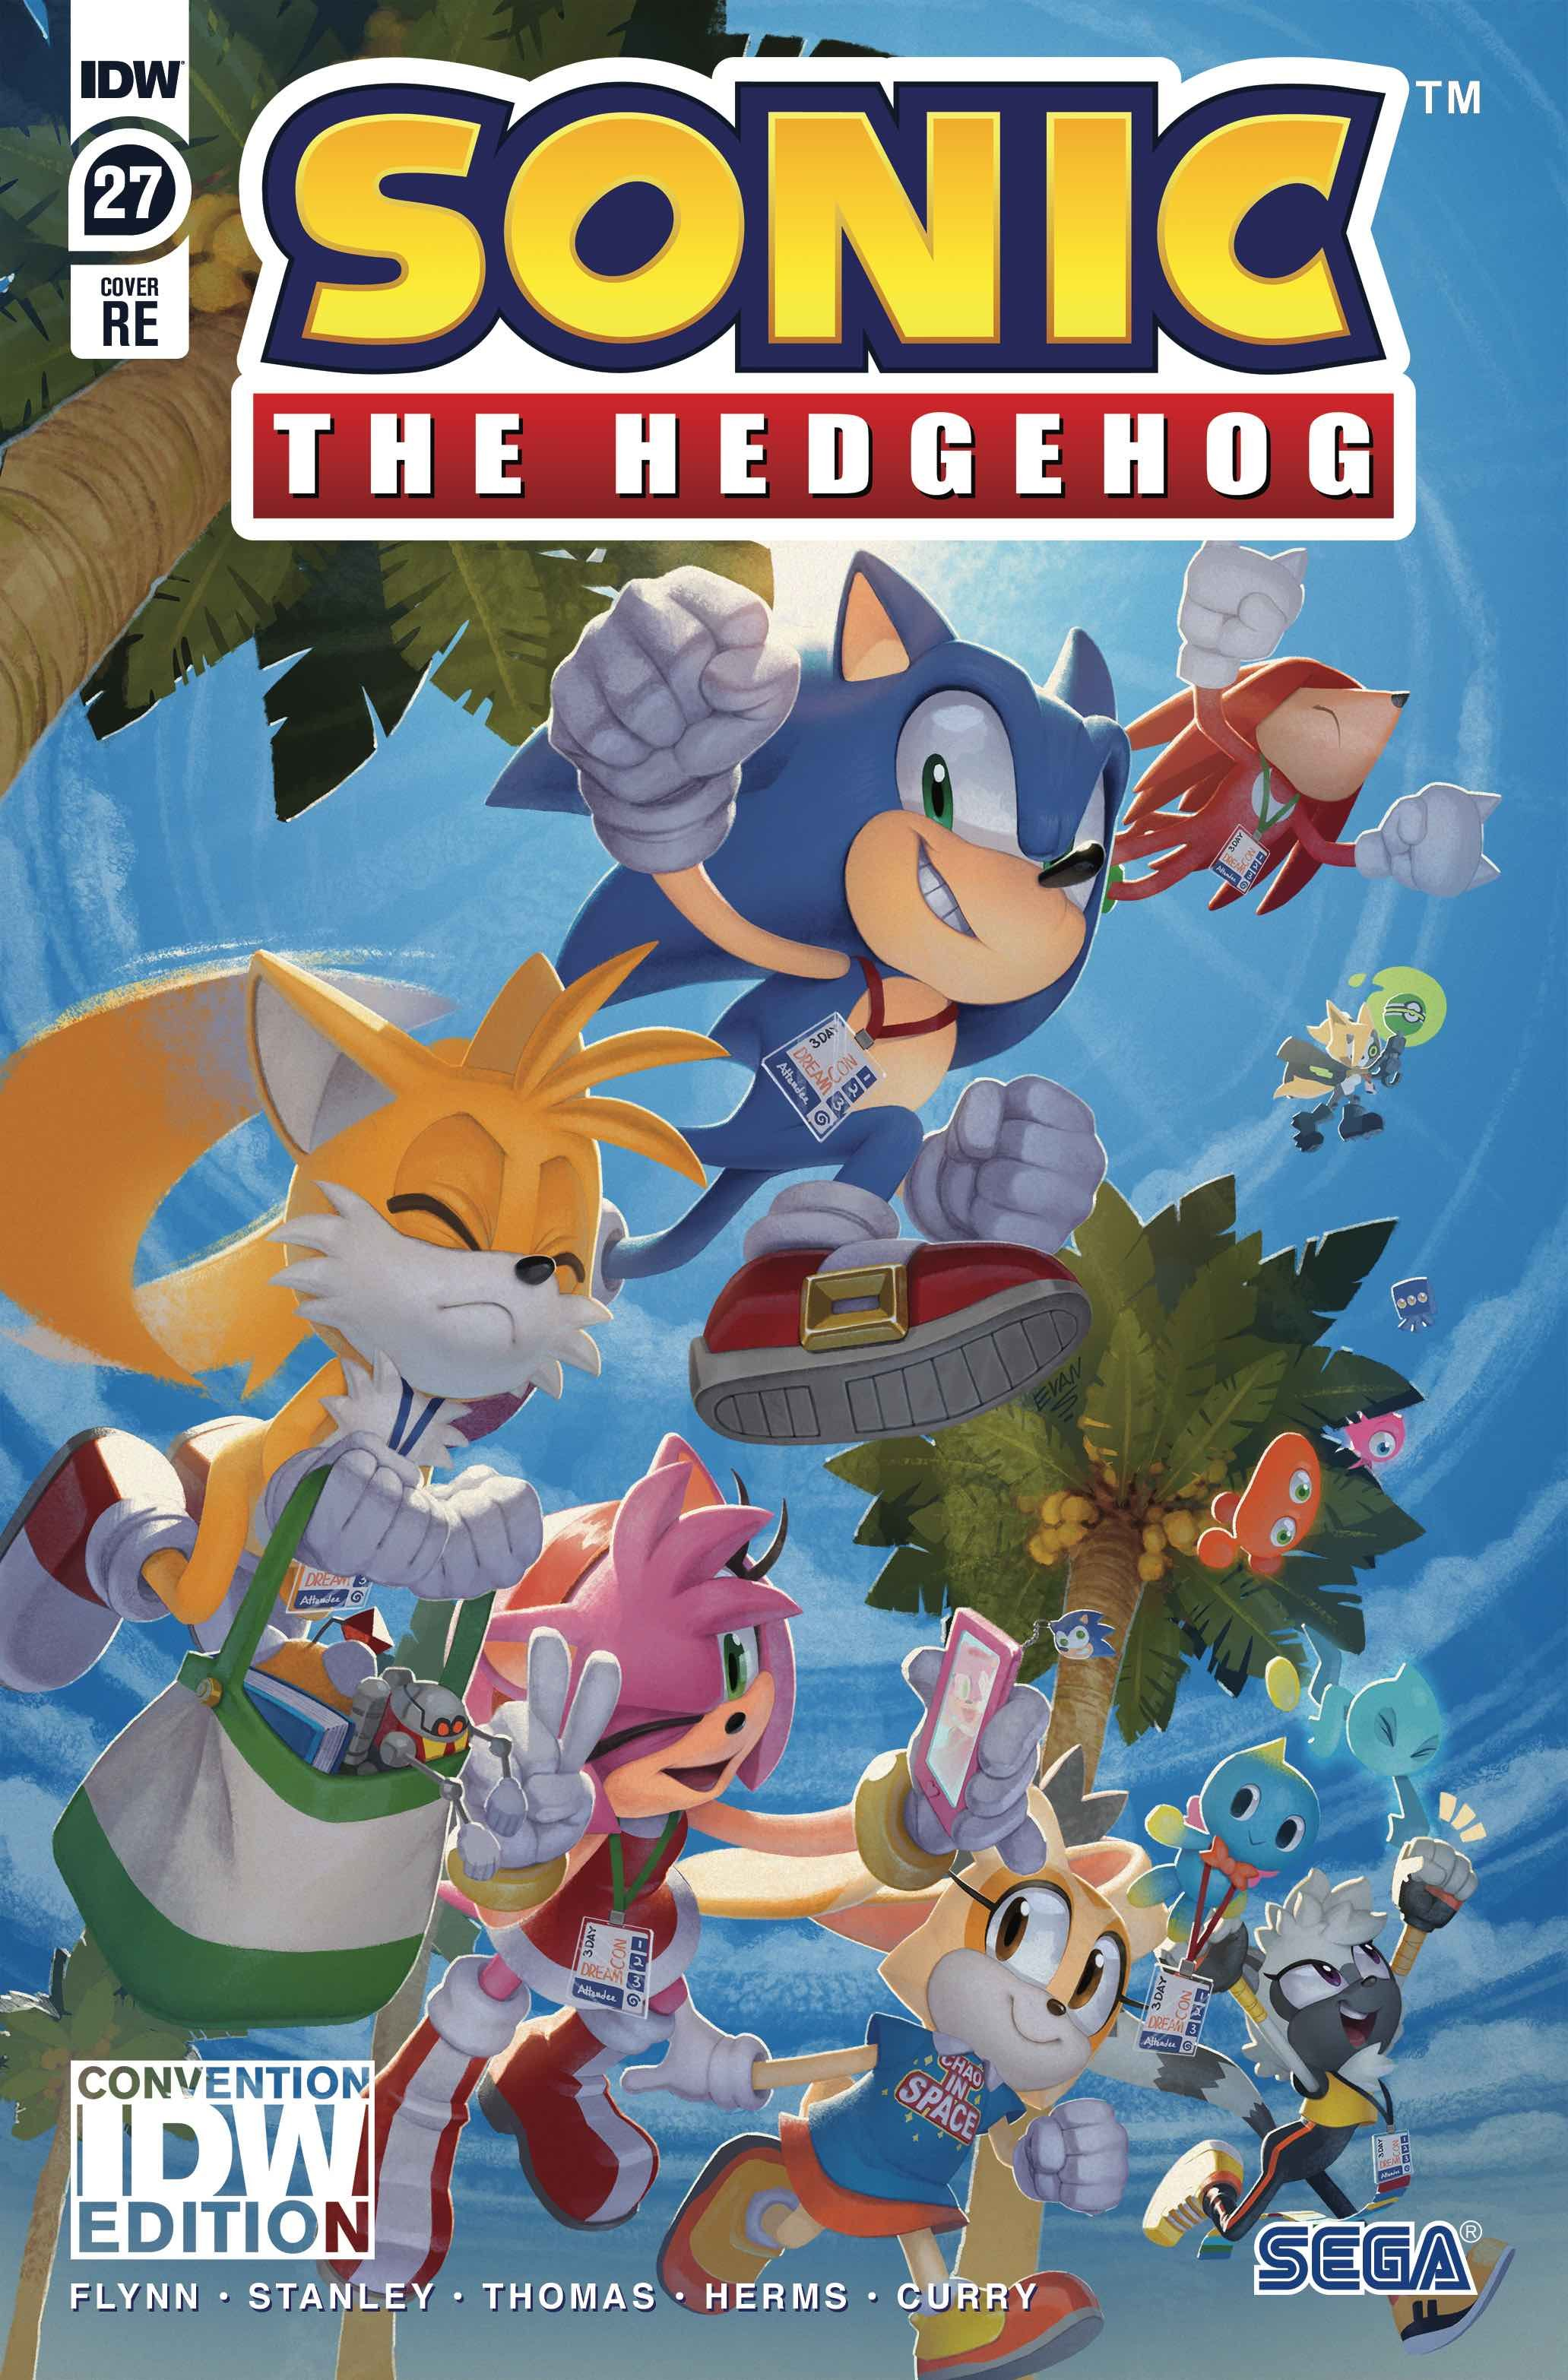 Idw Sonic The Hedgehog Issue 27 Sonic News Network Fandom